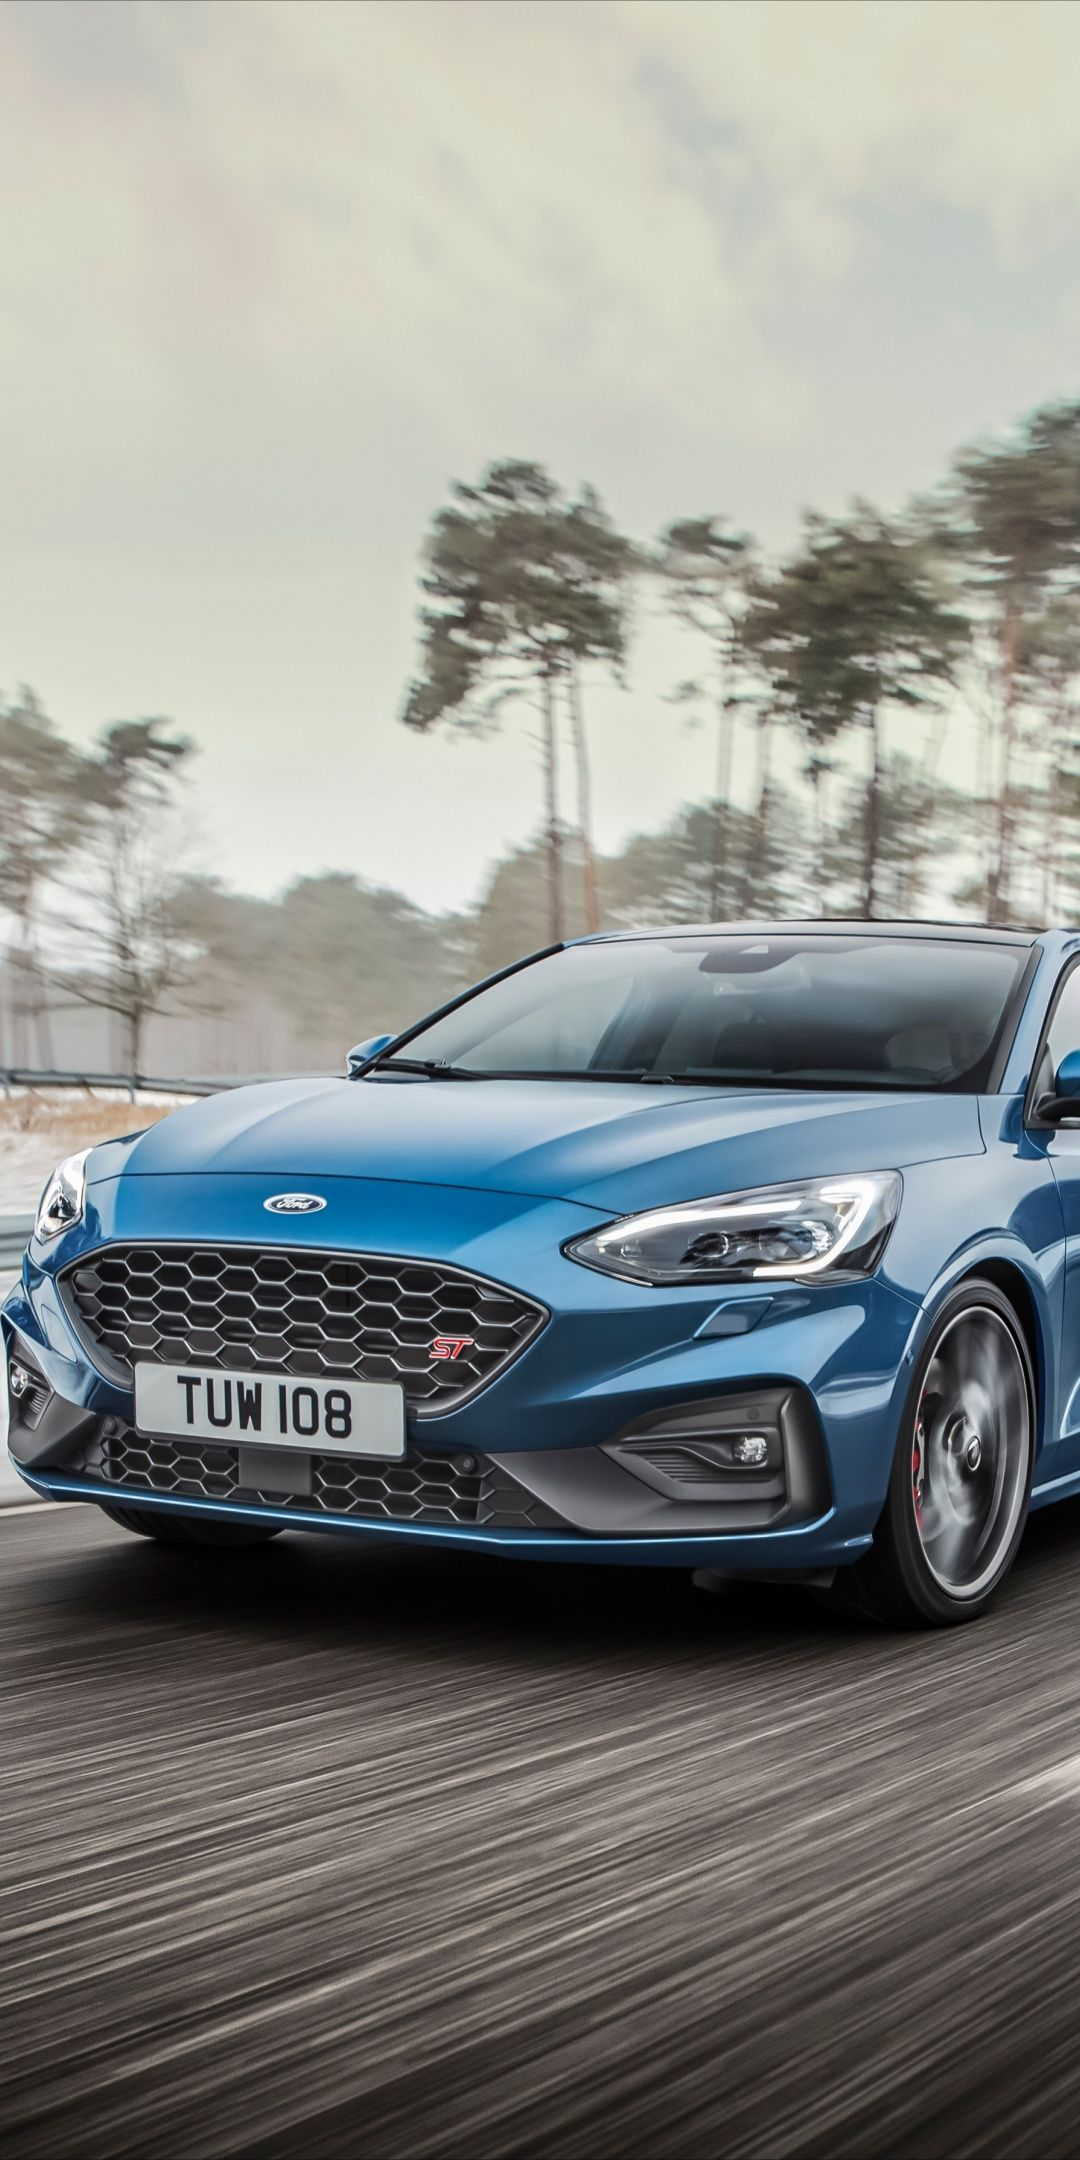 Ford Focus St On Road 2019 1080x2160 Wallpaper Ford Focus St